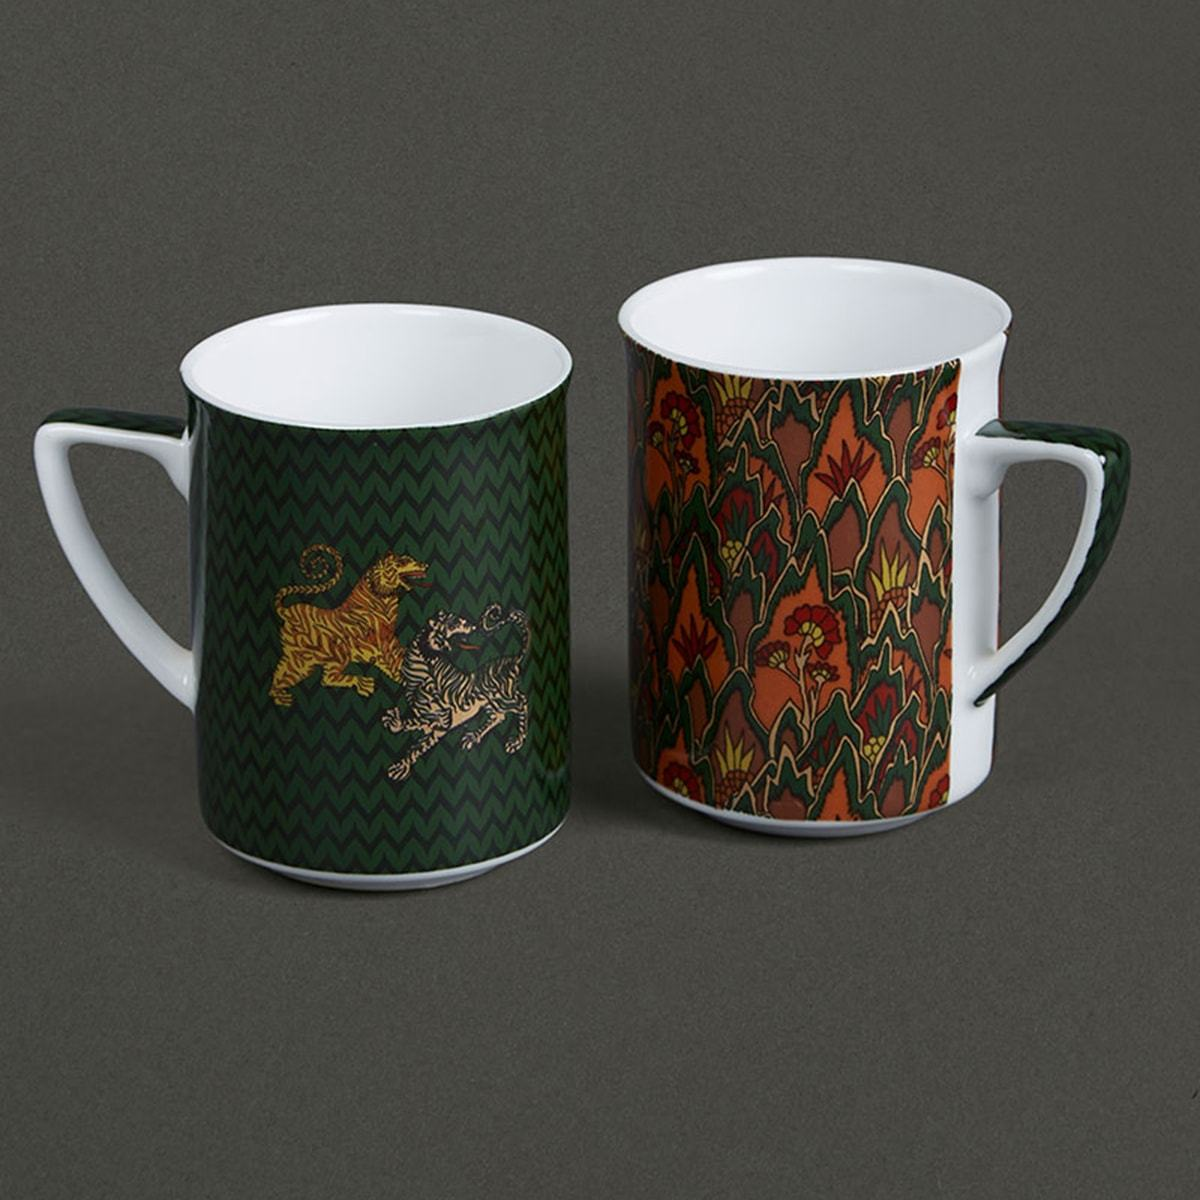 Green & Red Baagh Mugs (Set of 2) by Ritu Kumar Home - Home Artisan